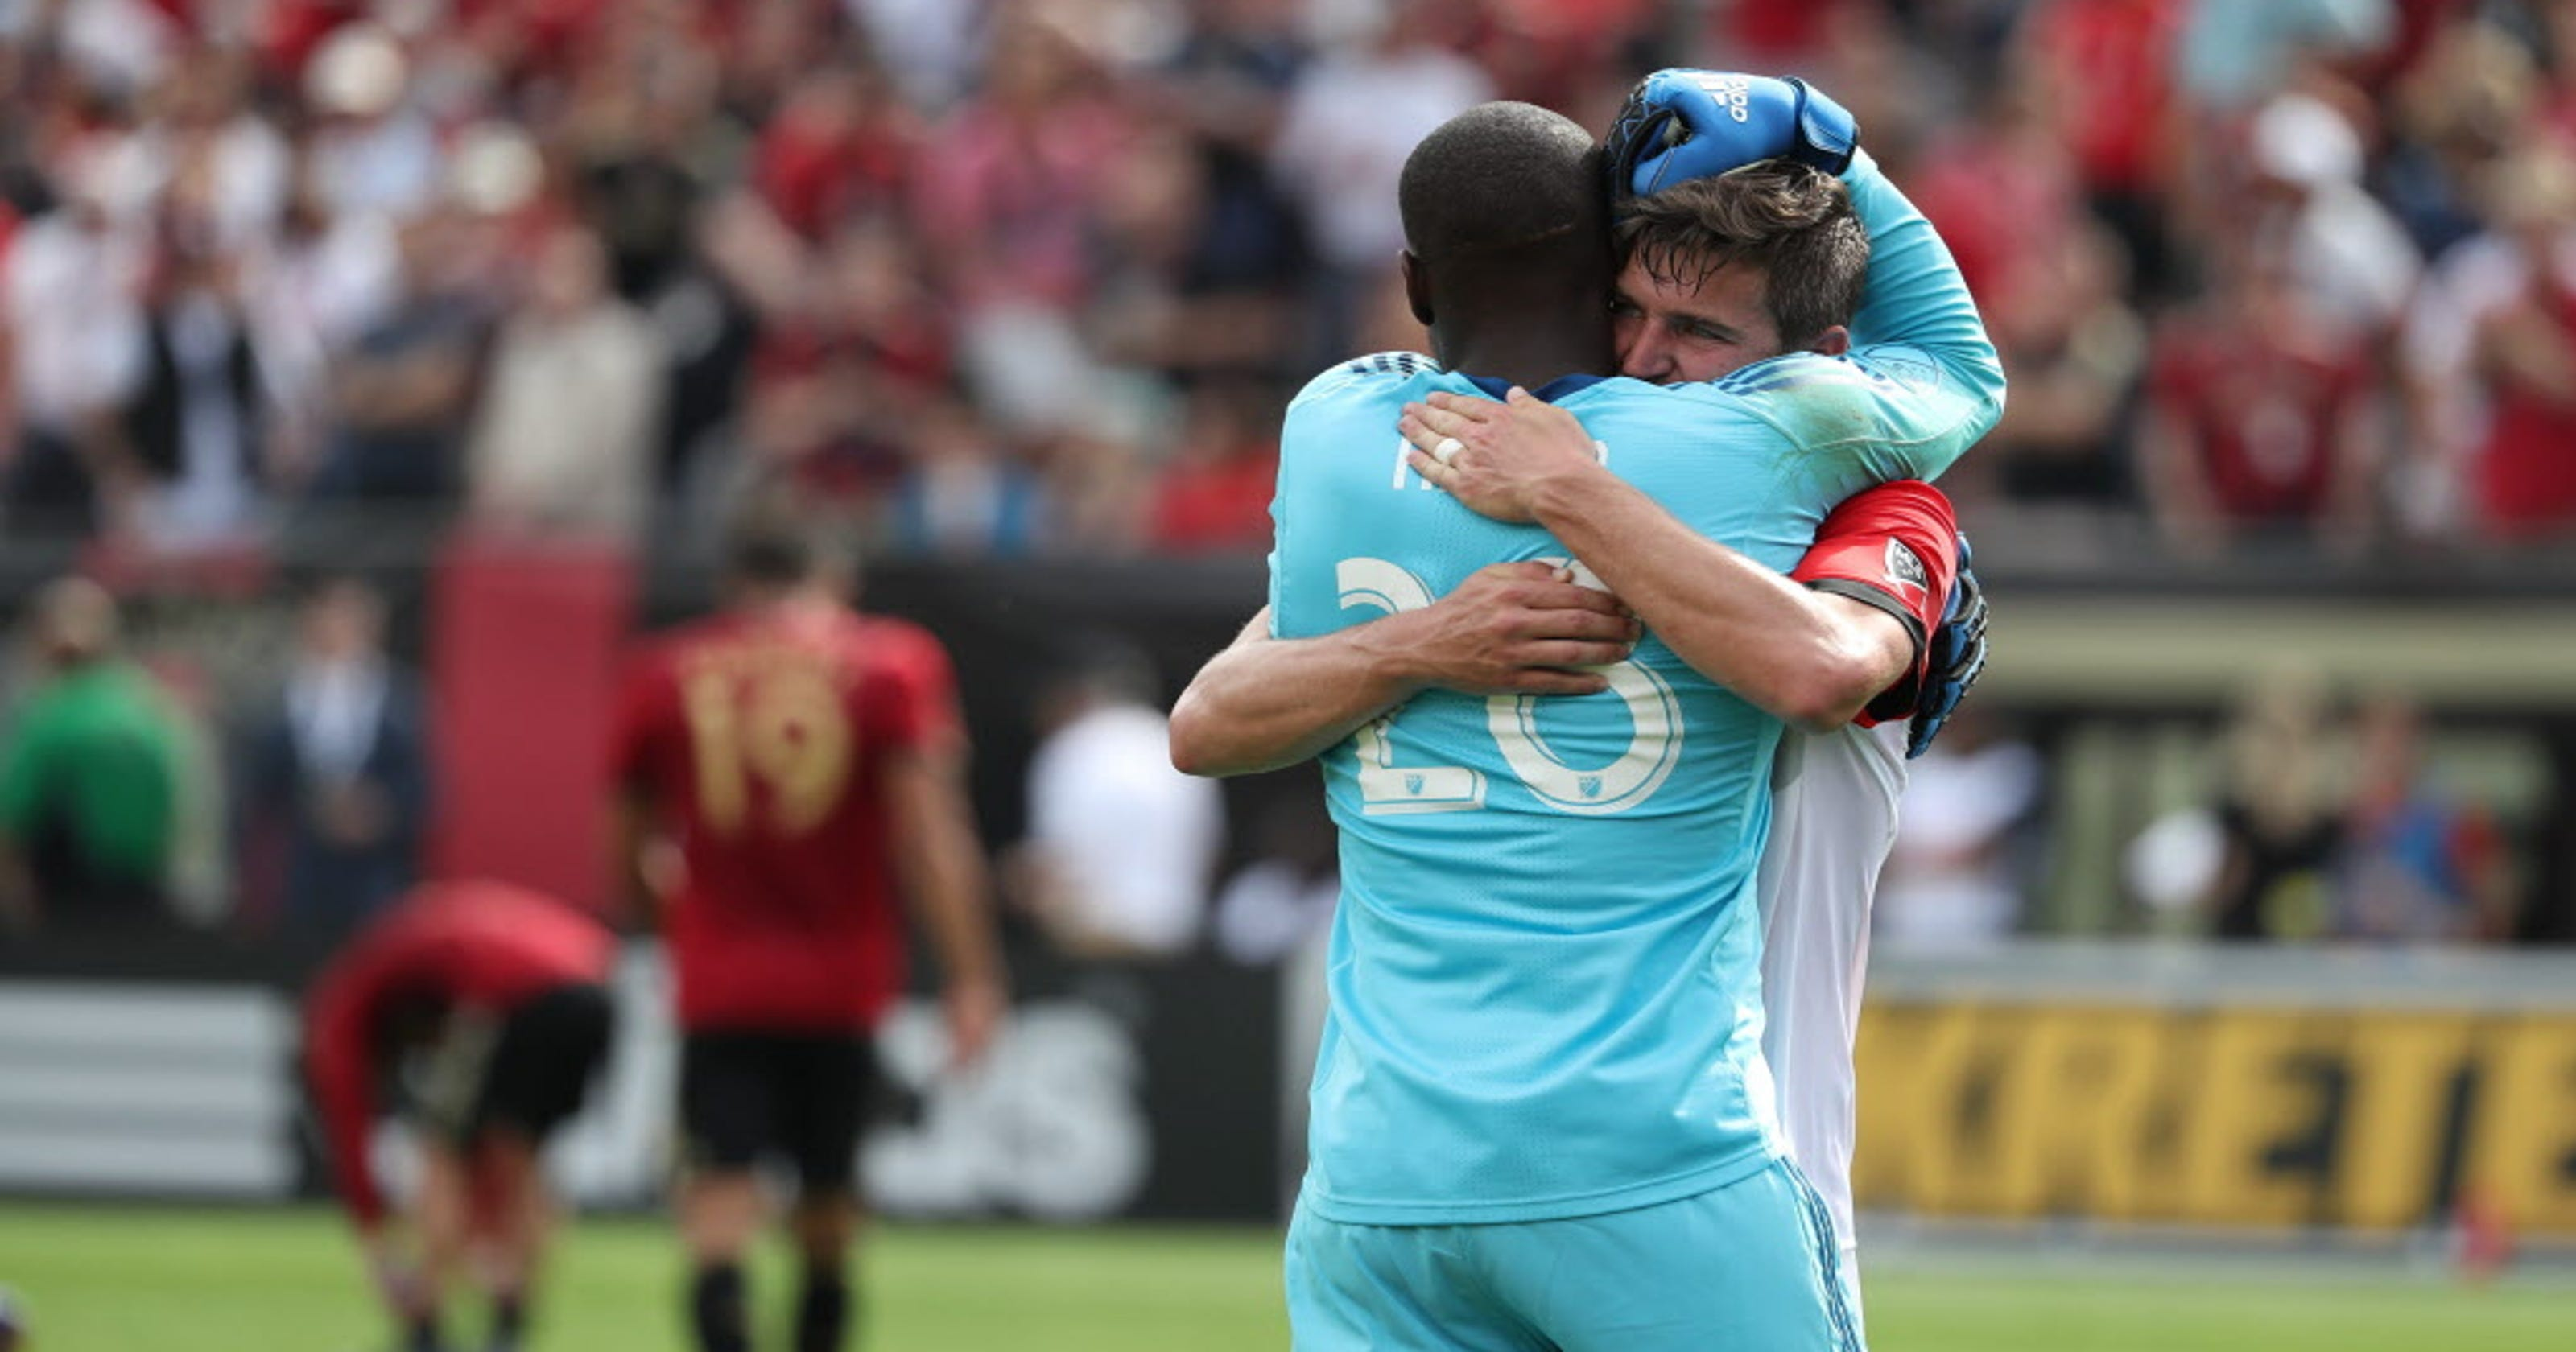 ab5627acd D.C. United down Atlanta United for first road win of season